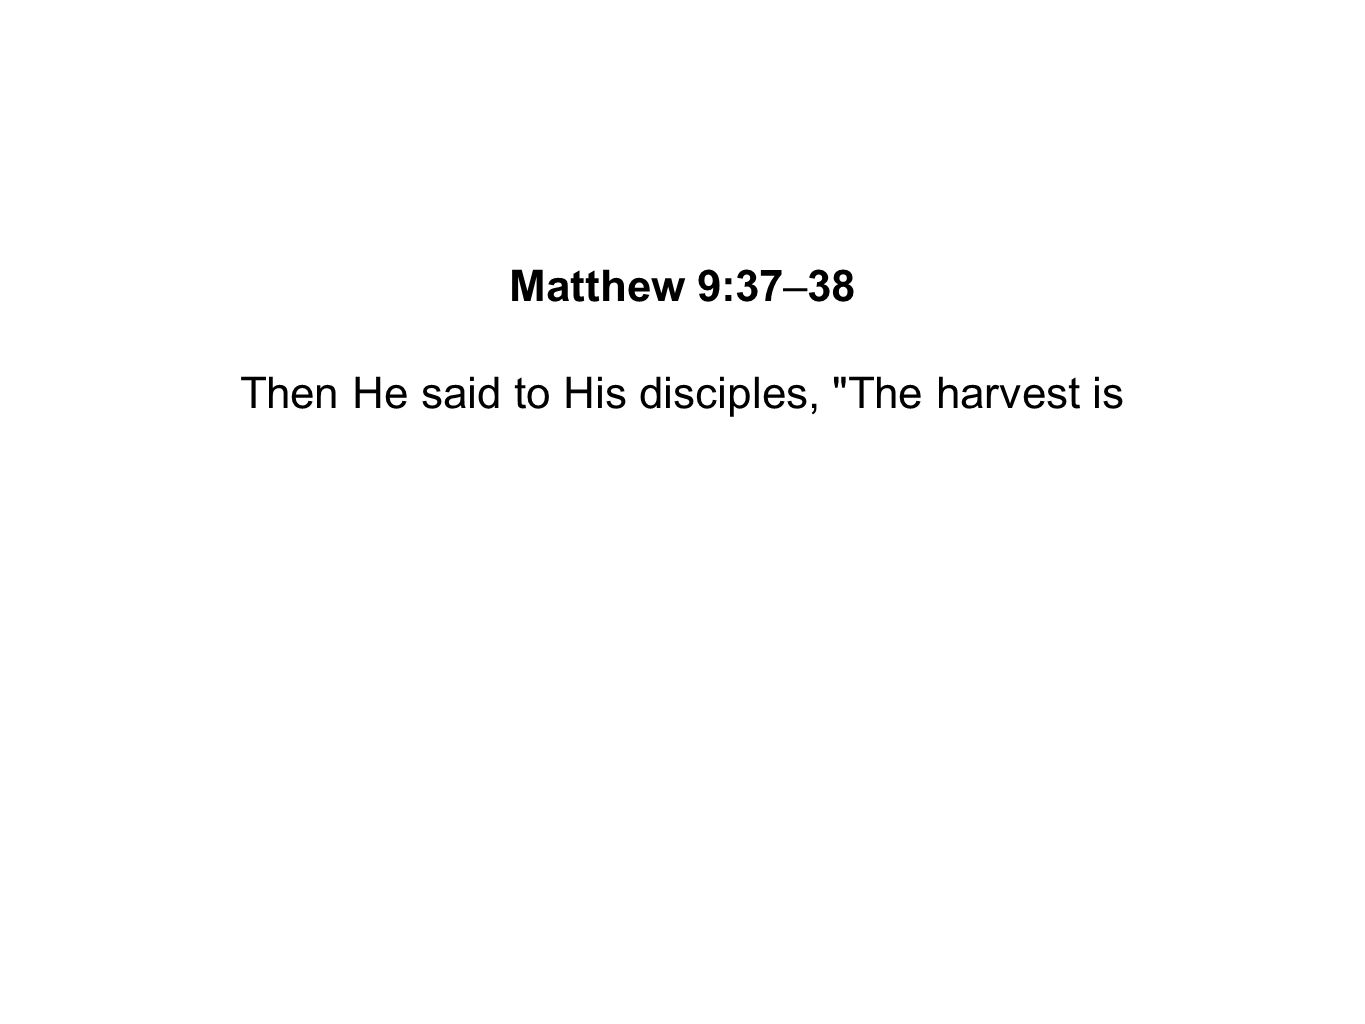 Then He said to His disciples, The harvest is